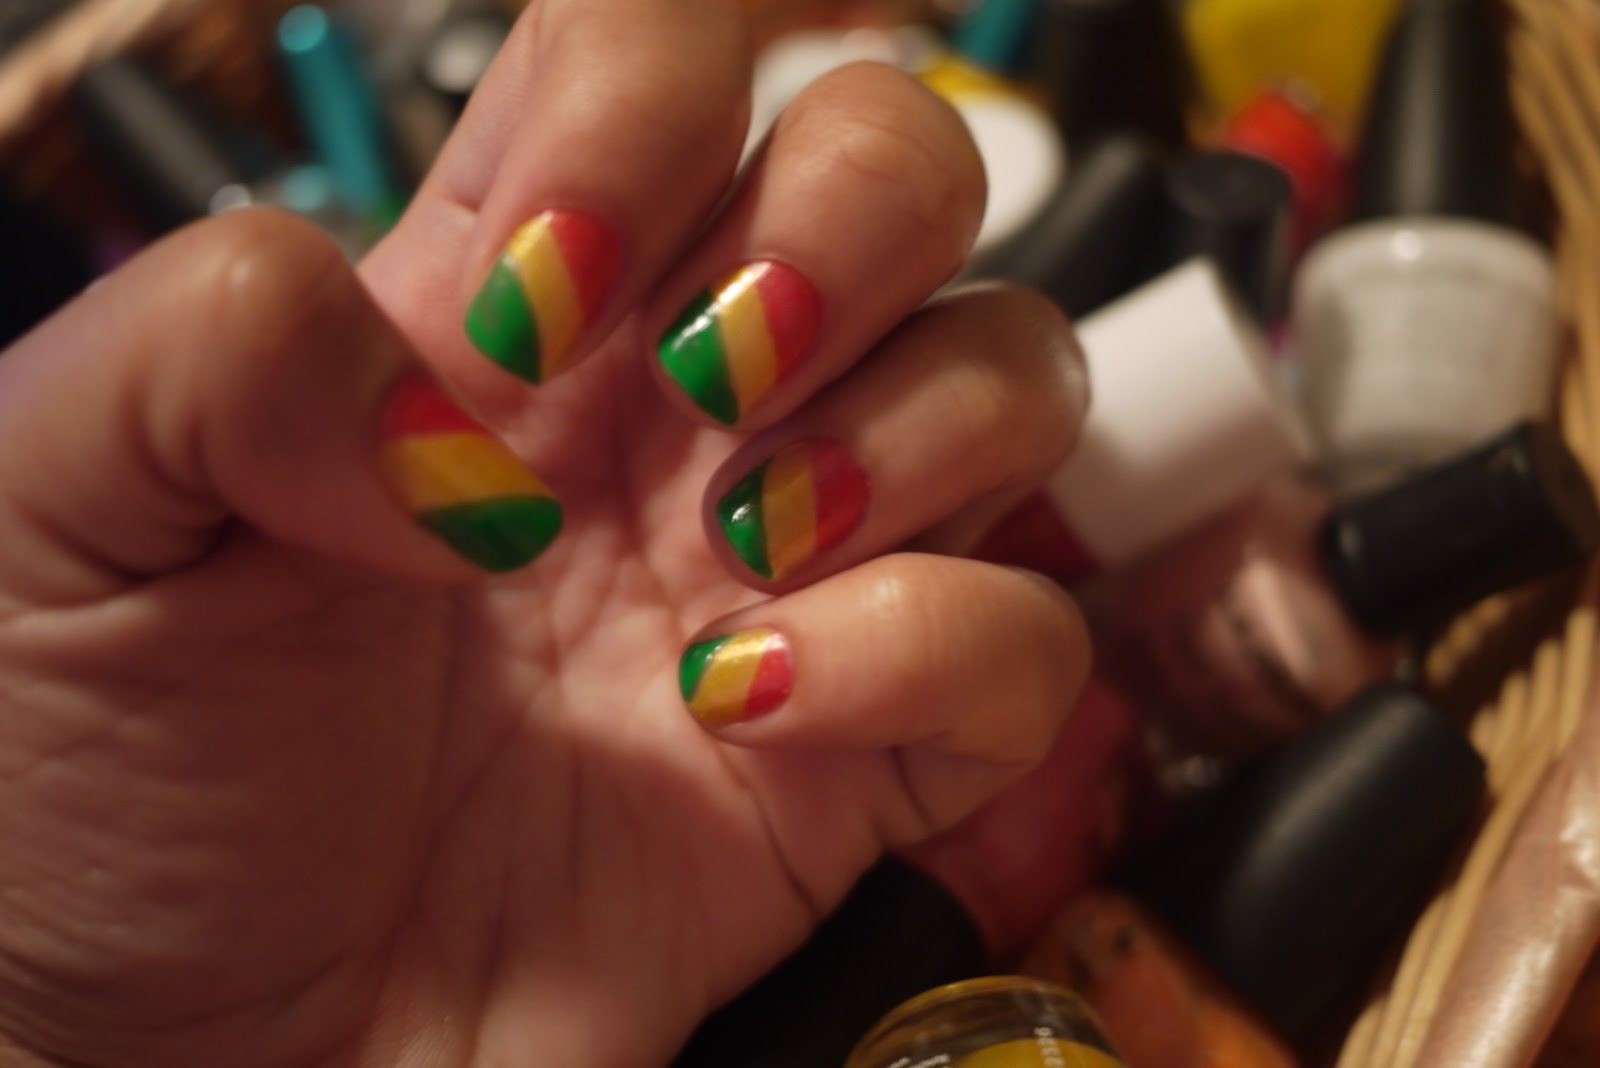 AngelaPanama.com: Rasta Nails aka Ethiopia flag